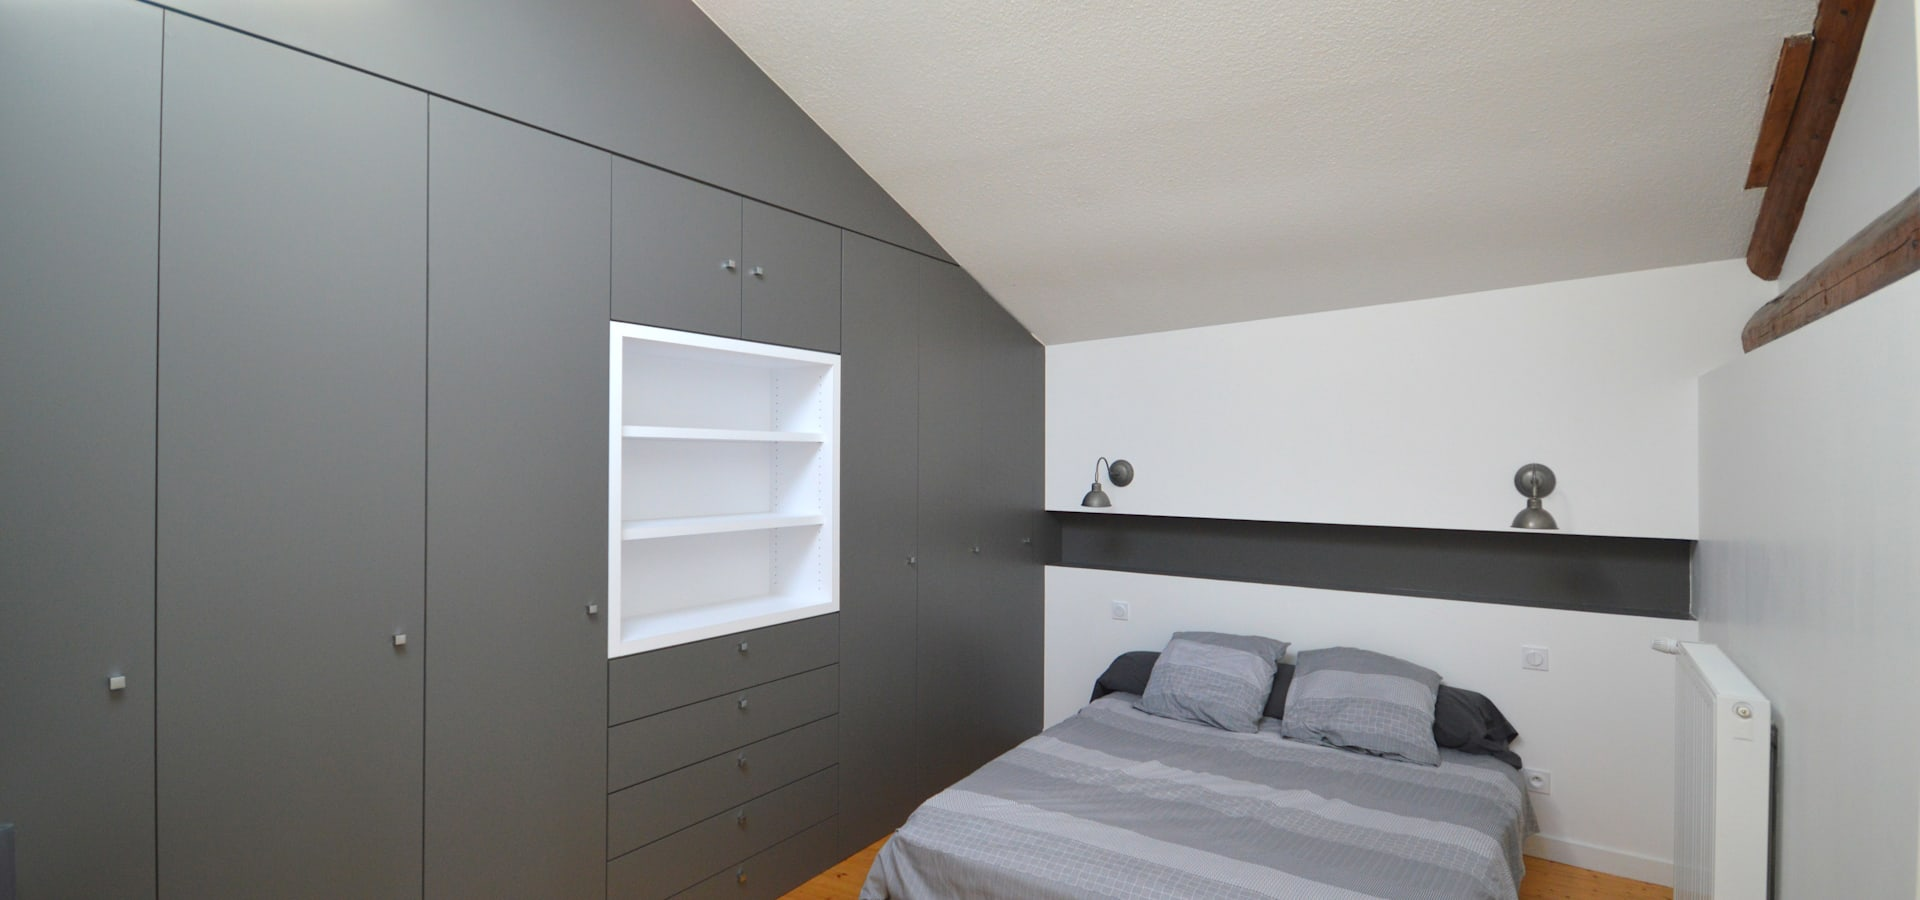 nicolas mercier architecte d 39 interieur architectes d 39 int rieur villars sur homify. Black Bedroom Furniture Sets. Home Design Ideas